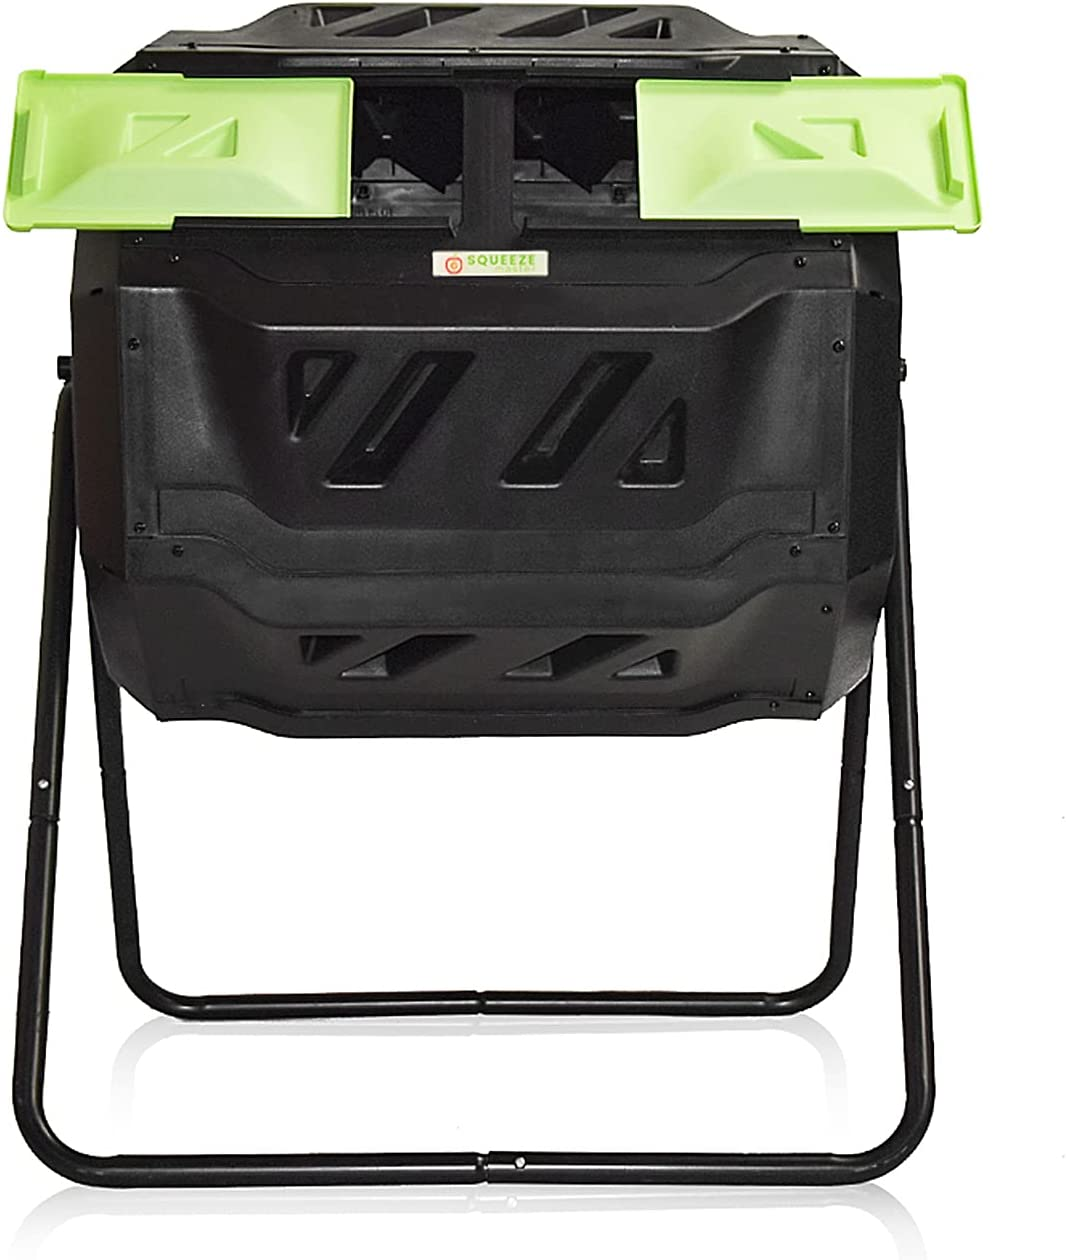 SQUEEZE Large Compost Tumbler Bin